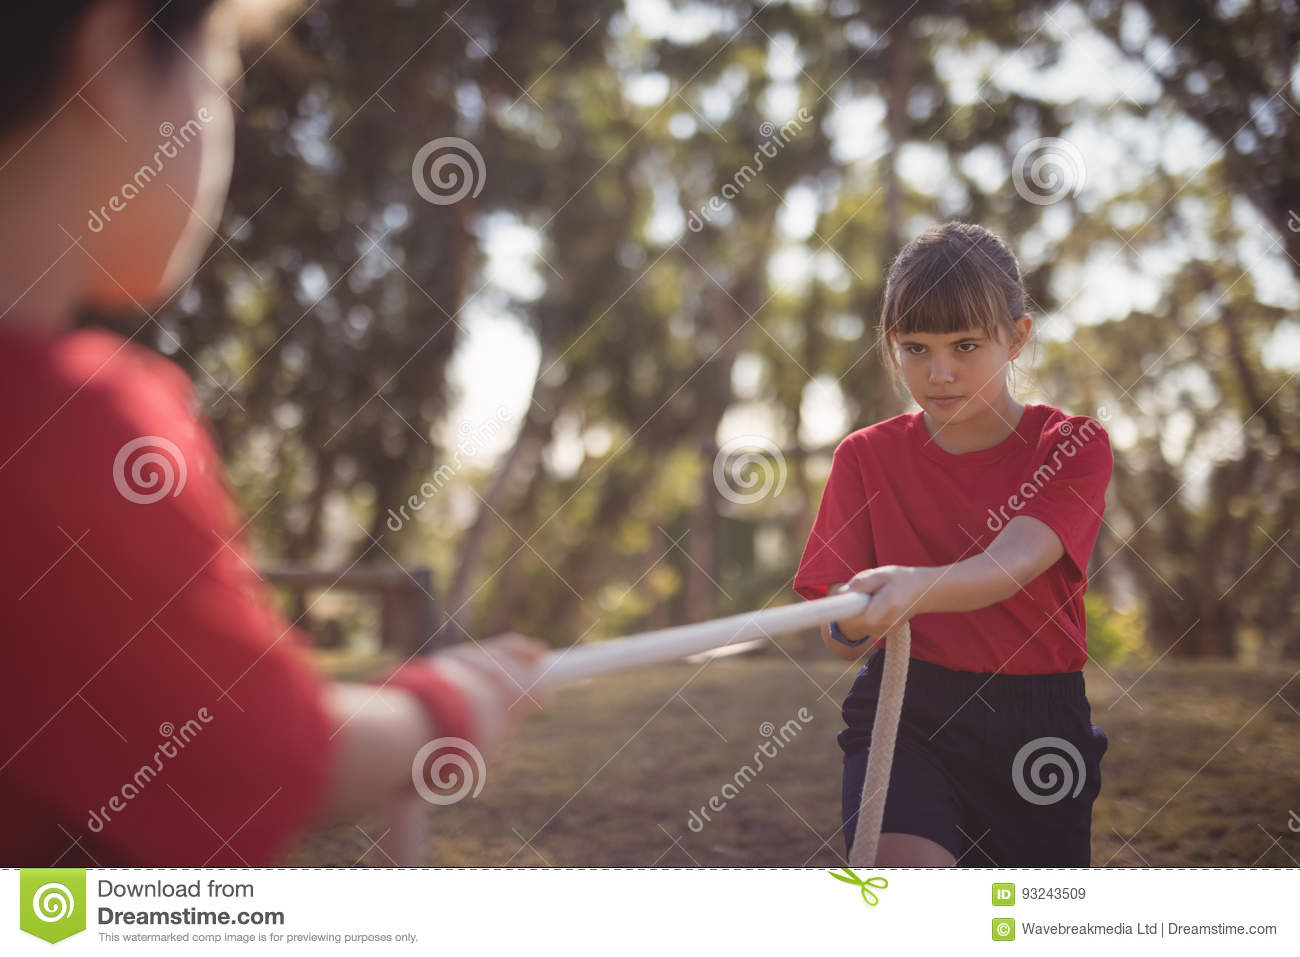 Determined kids practicing tug of war during obstacle course